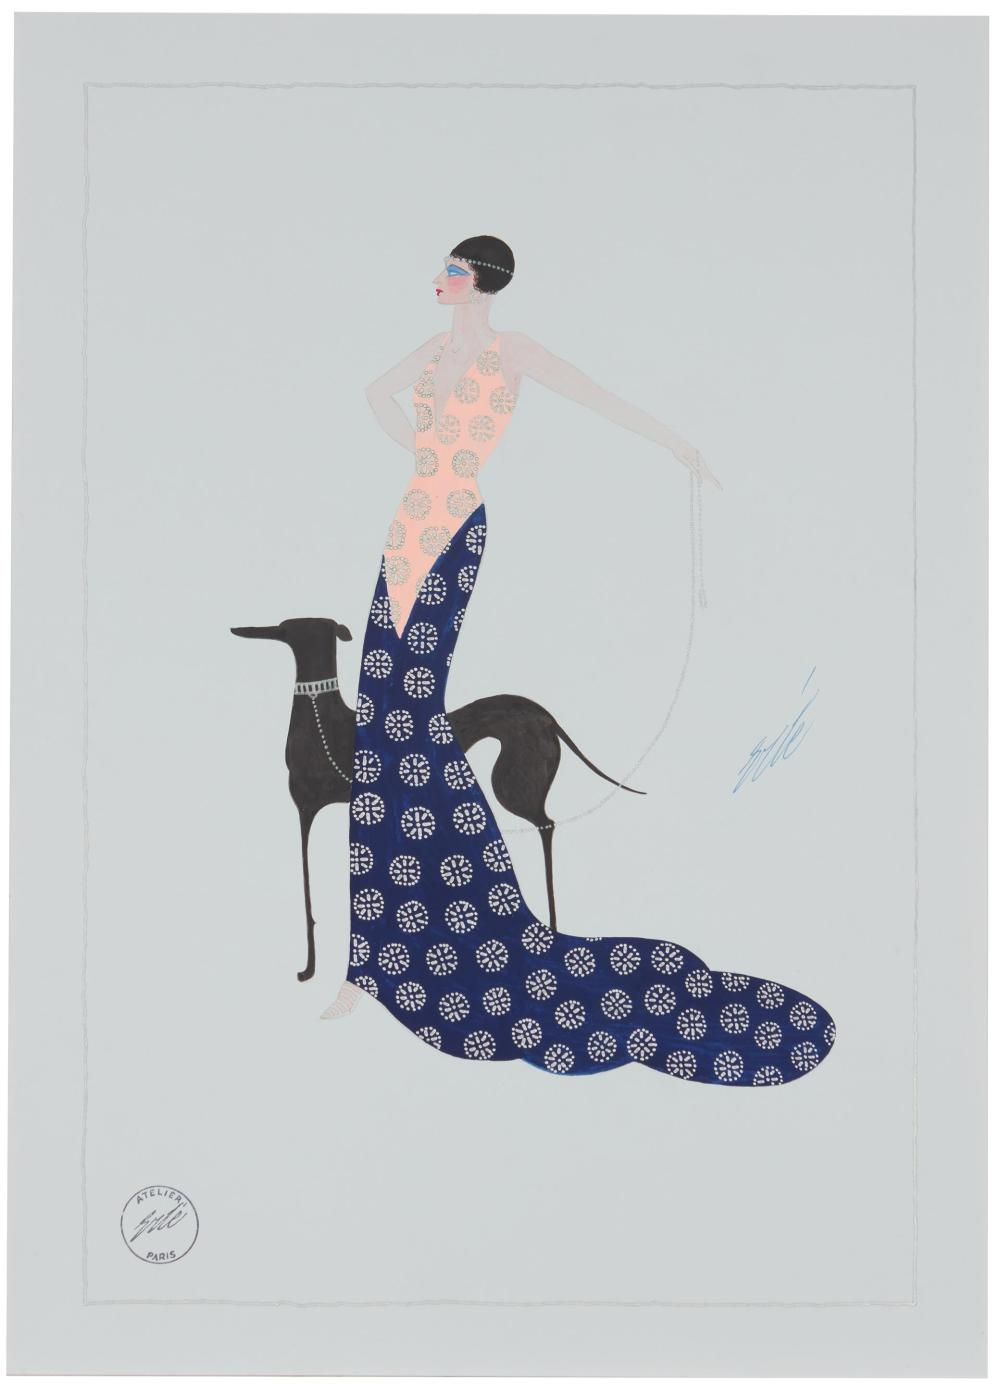 Romain (Erté) de Tirtoff, (1892-1990, Russian), Woman in a peach and navy gown with train and black dog, Gouache with metallic paint on